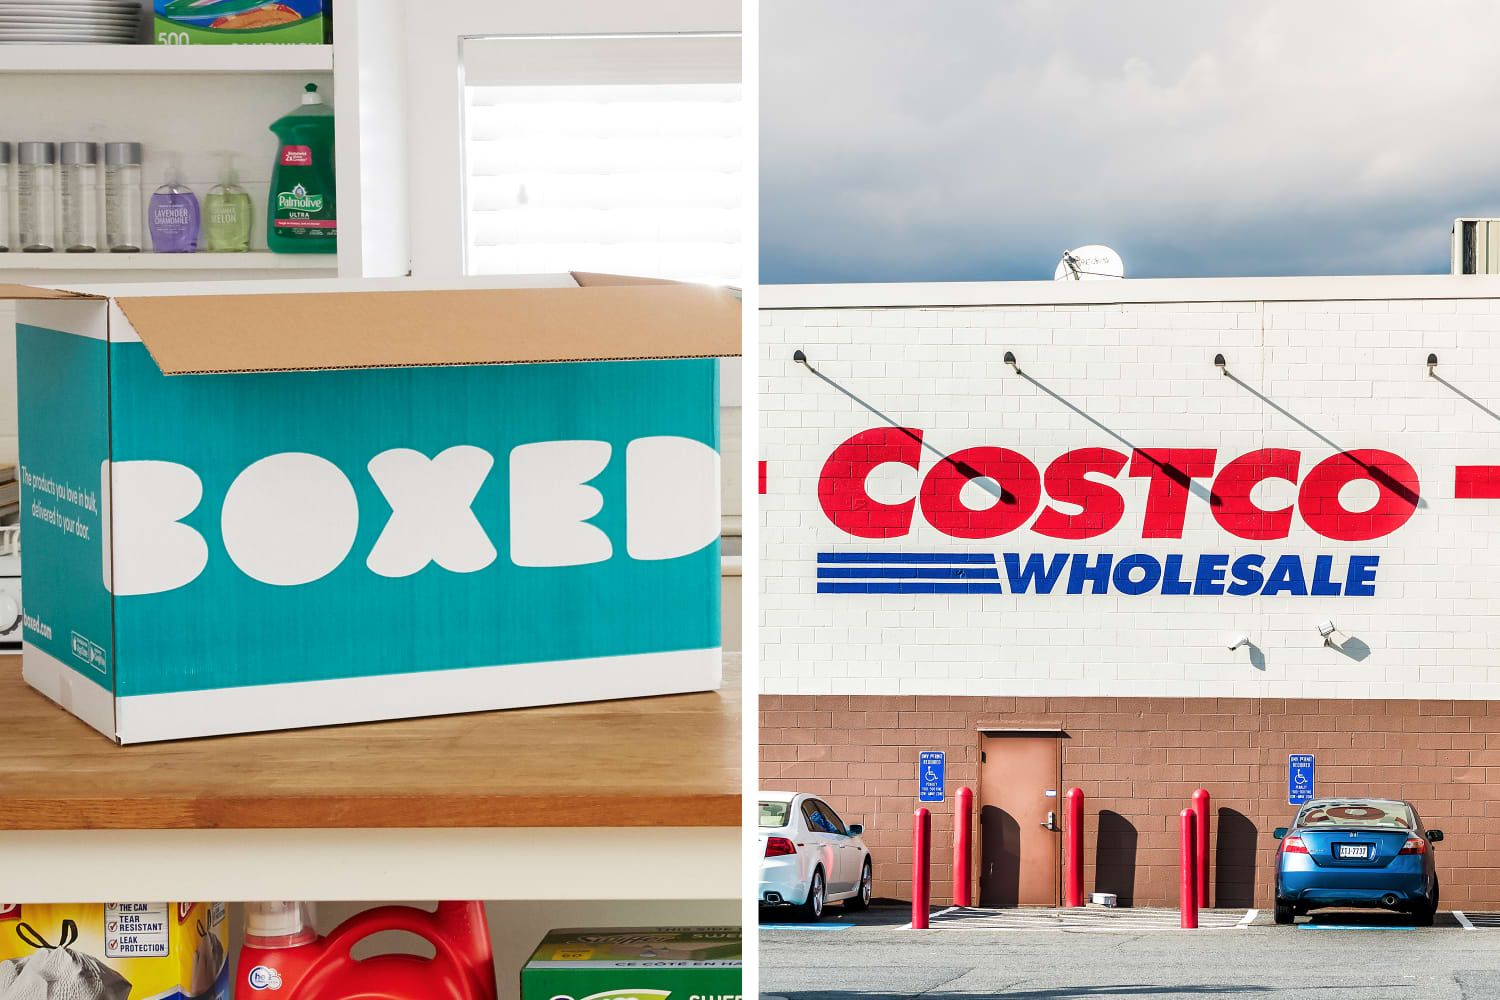 Costco vs boxed heres which bulk retailer is cheaper